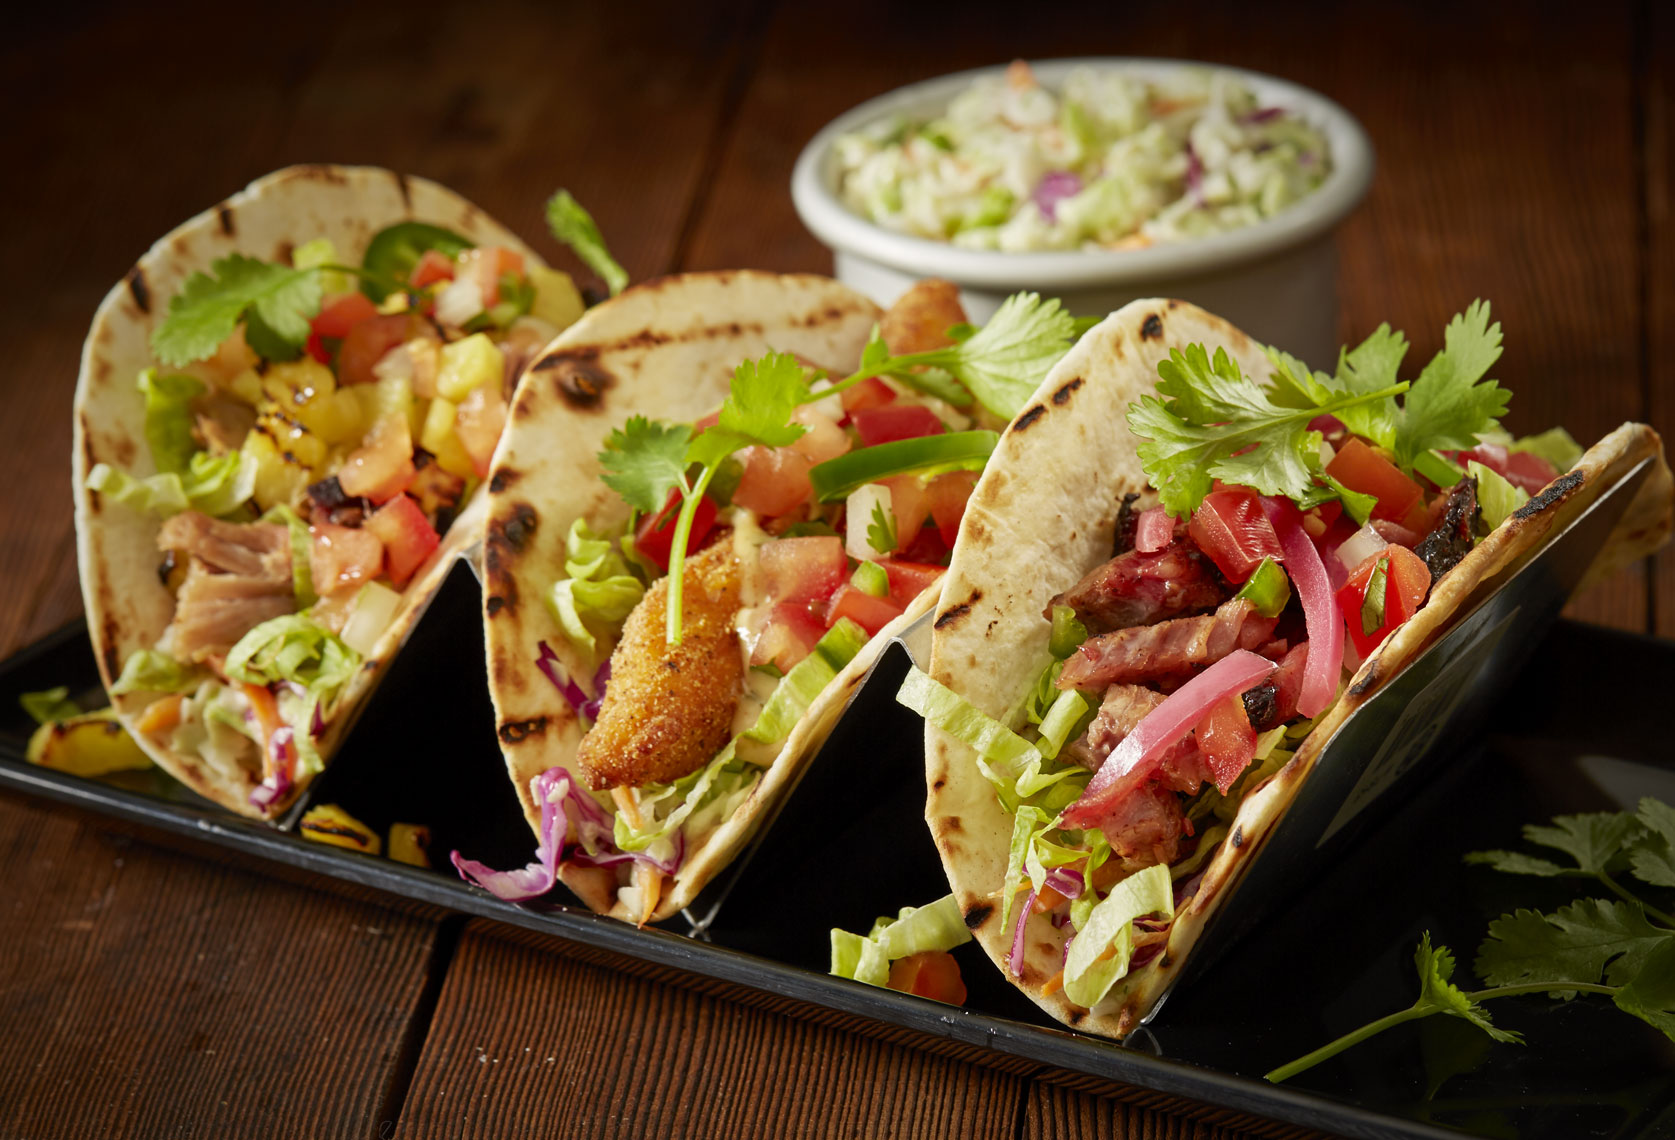 Tacos/softshell/wood background/food photography